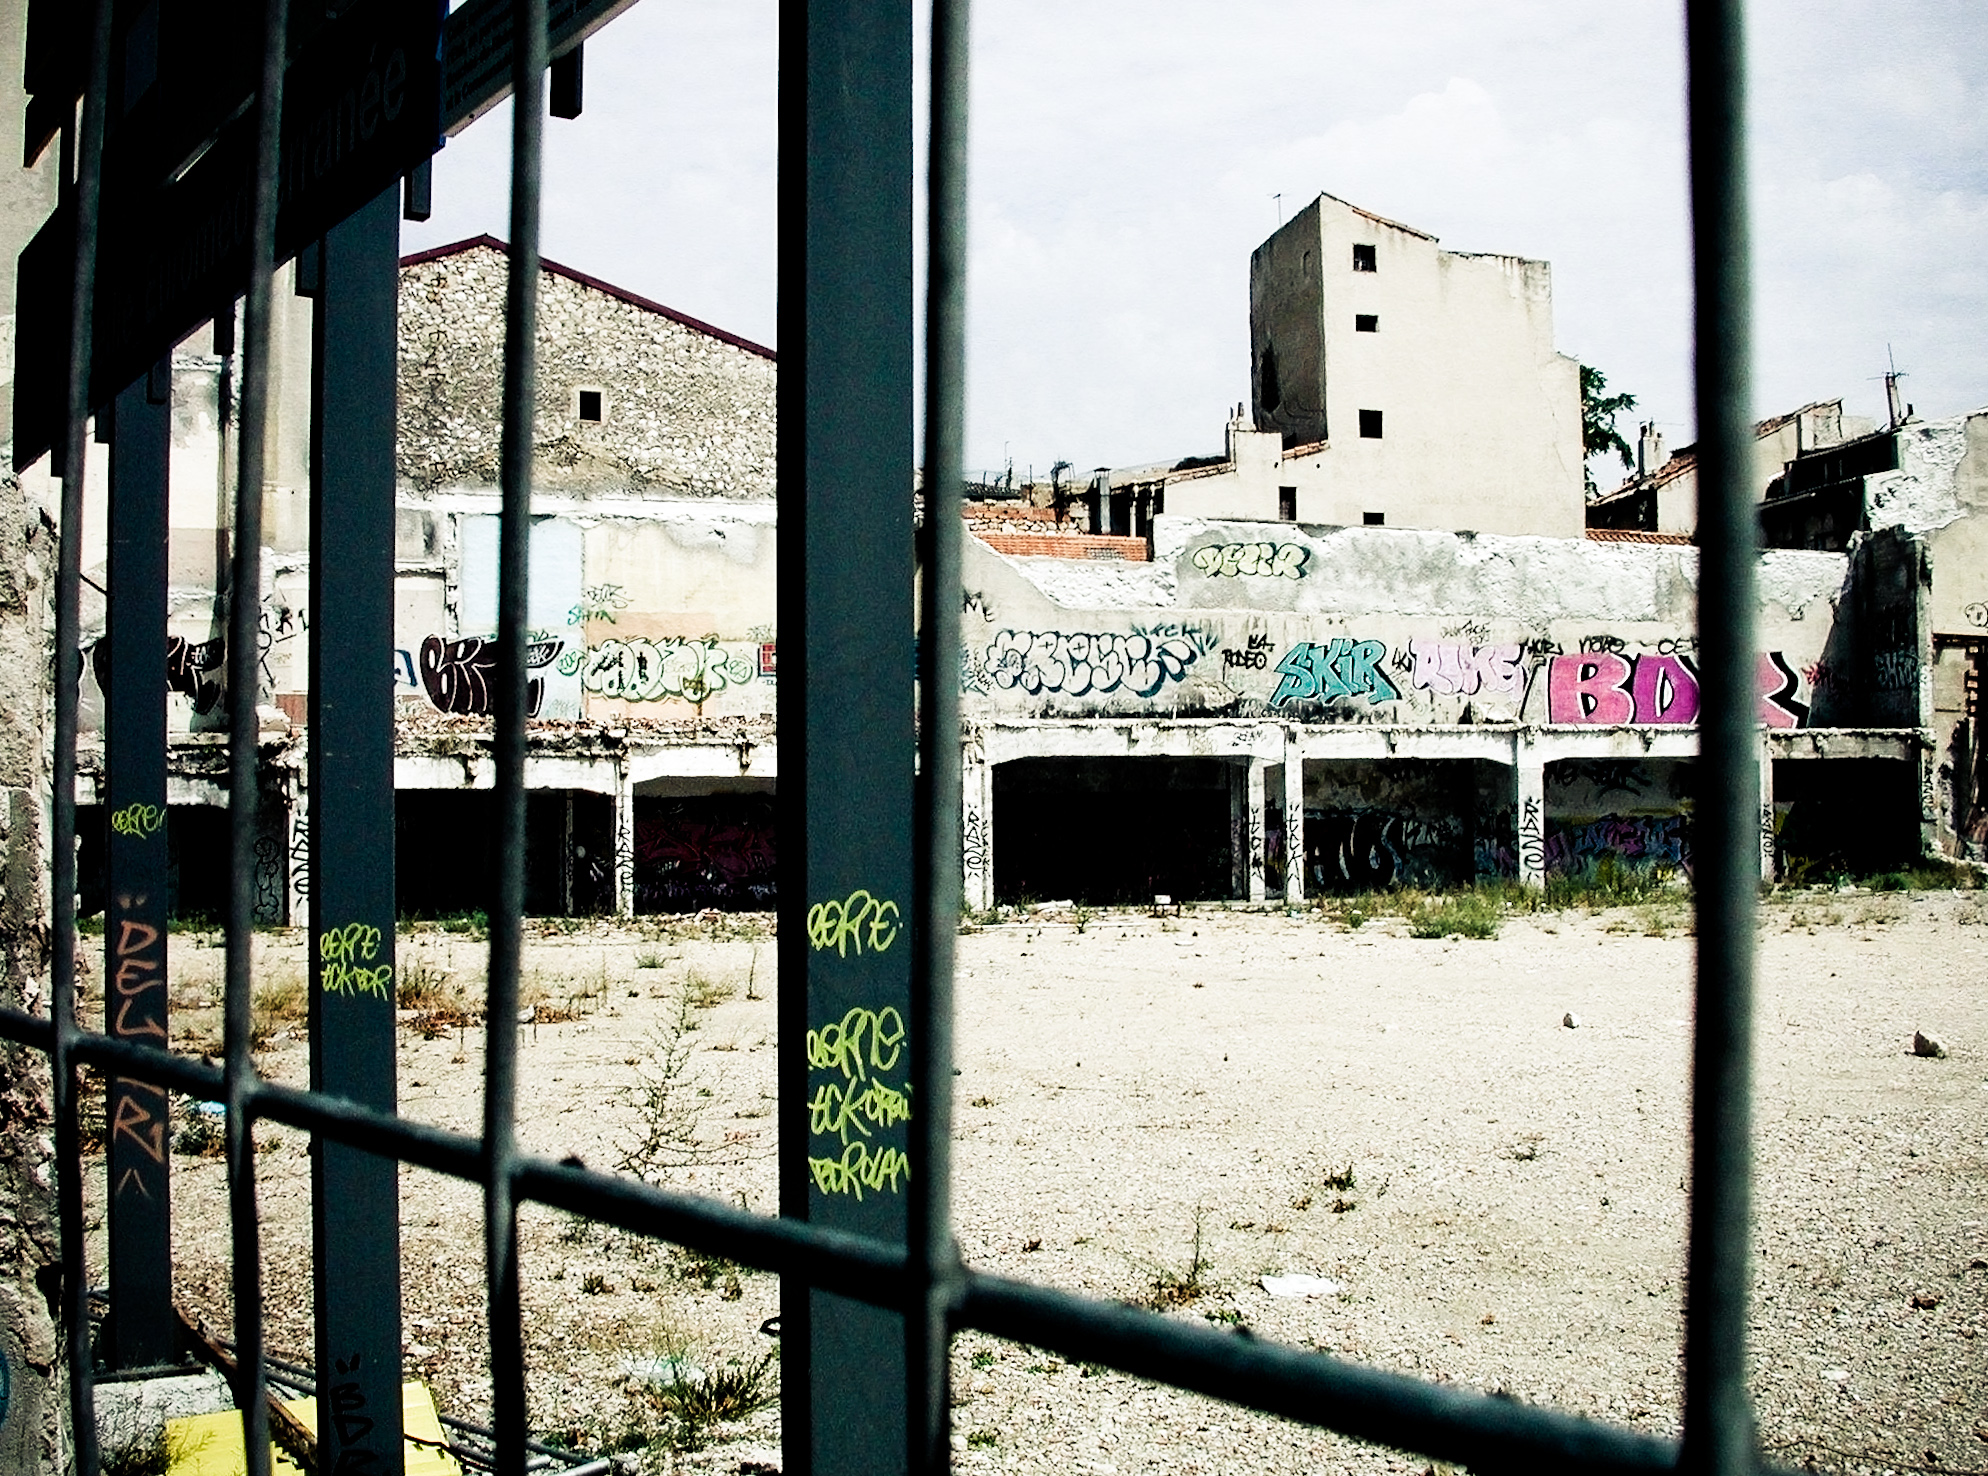 Behind bars, Abandoned, Bars, Behind, Building, HQ Photo